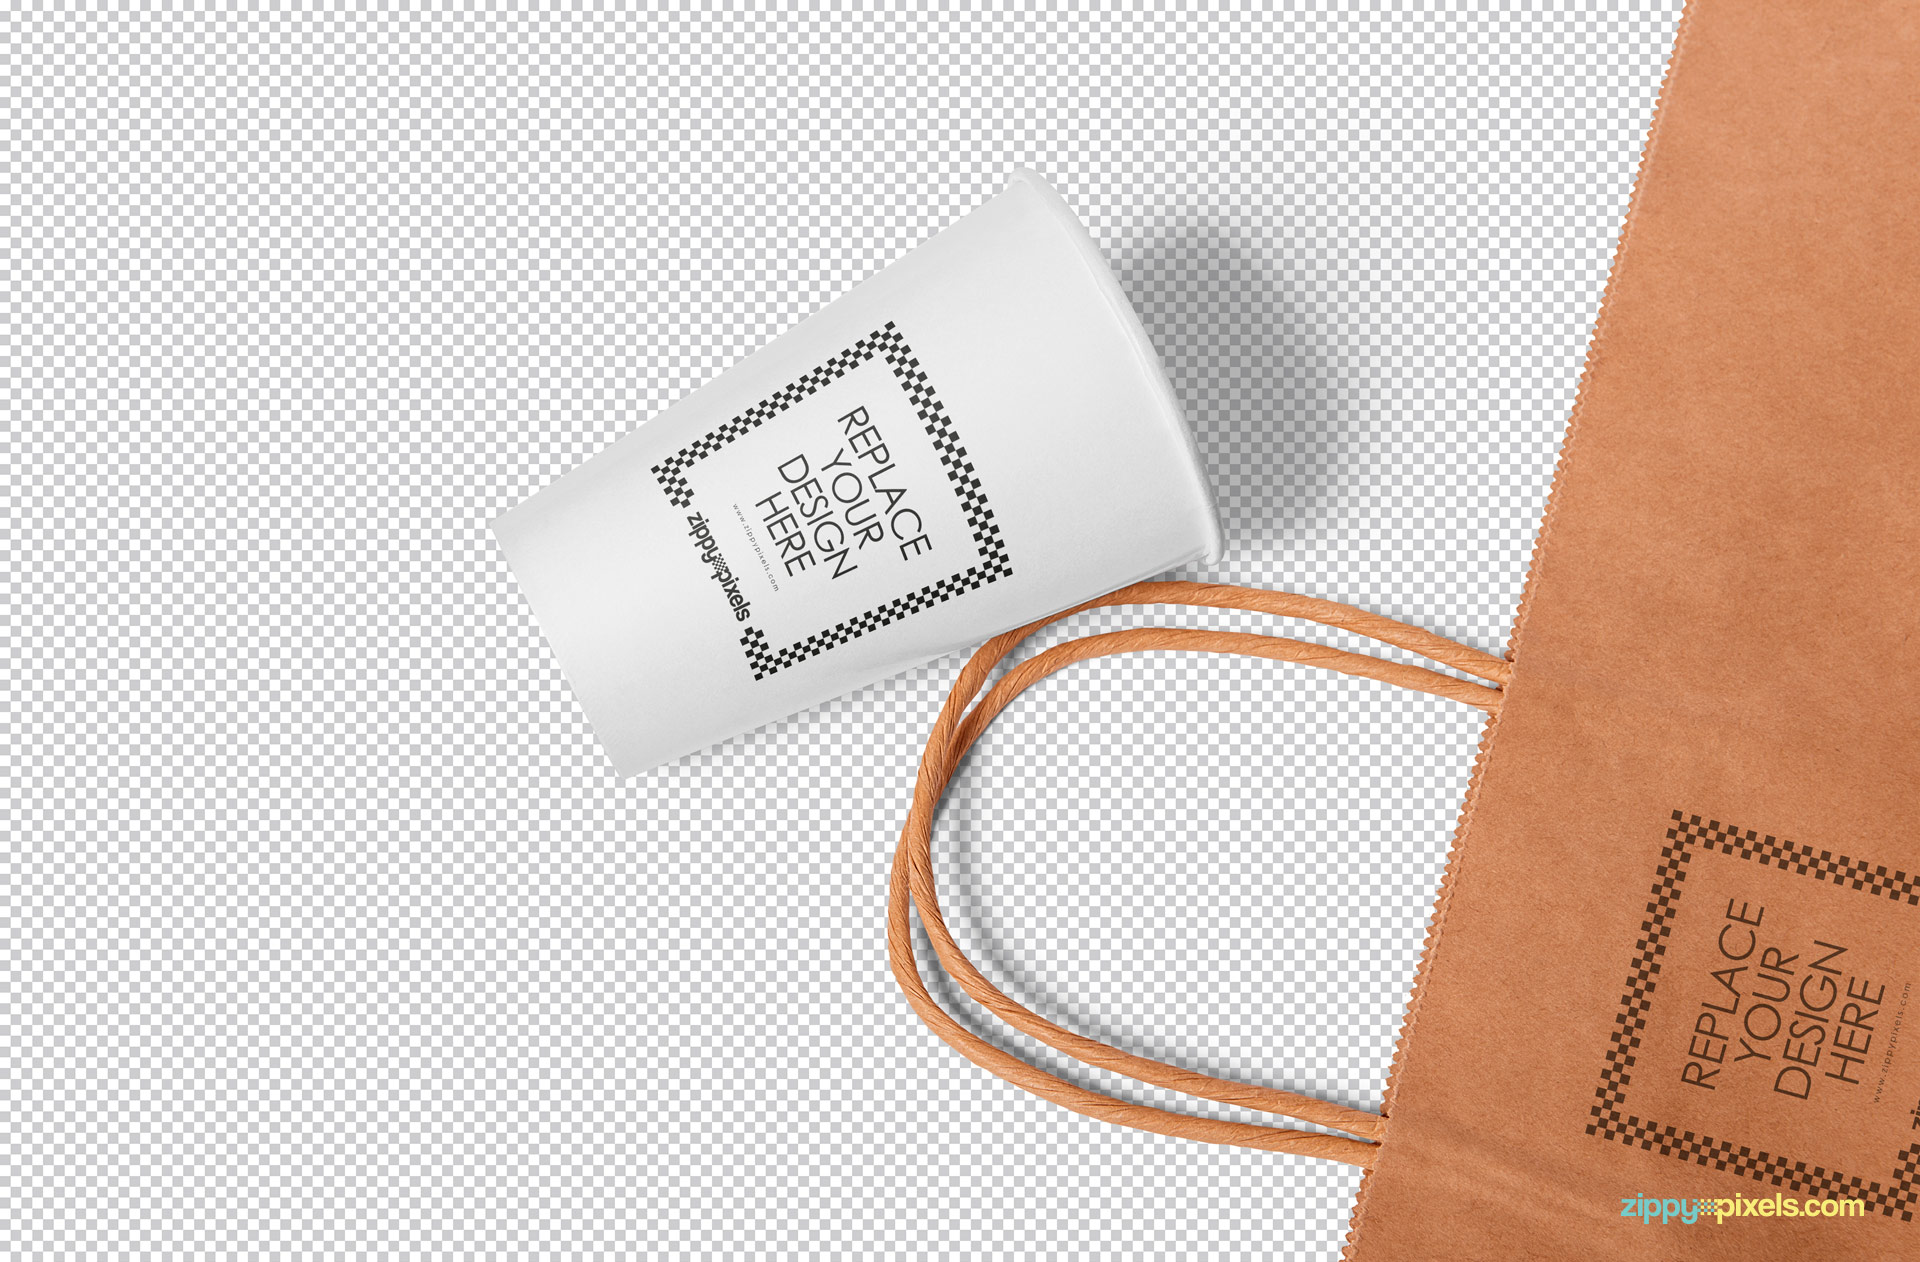 Smart object option to replace the design of this paper cup mockup PSD.